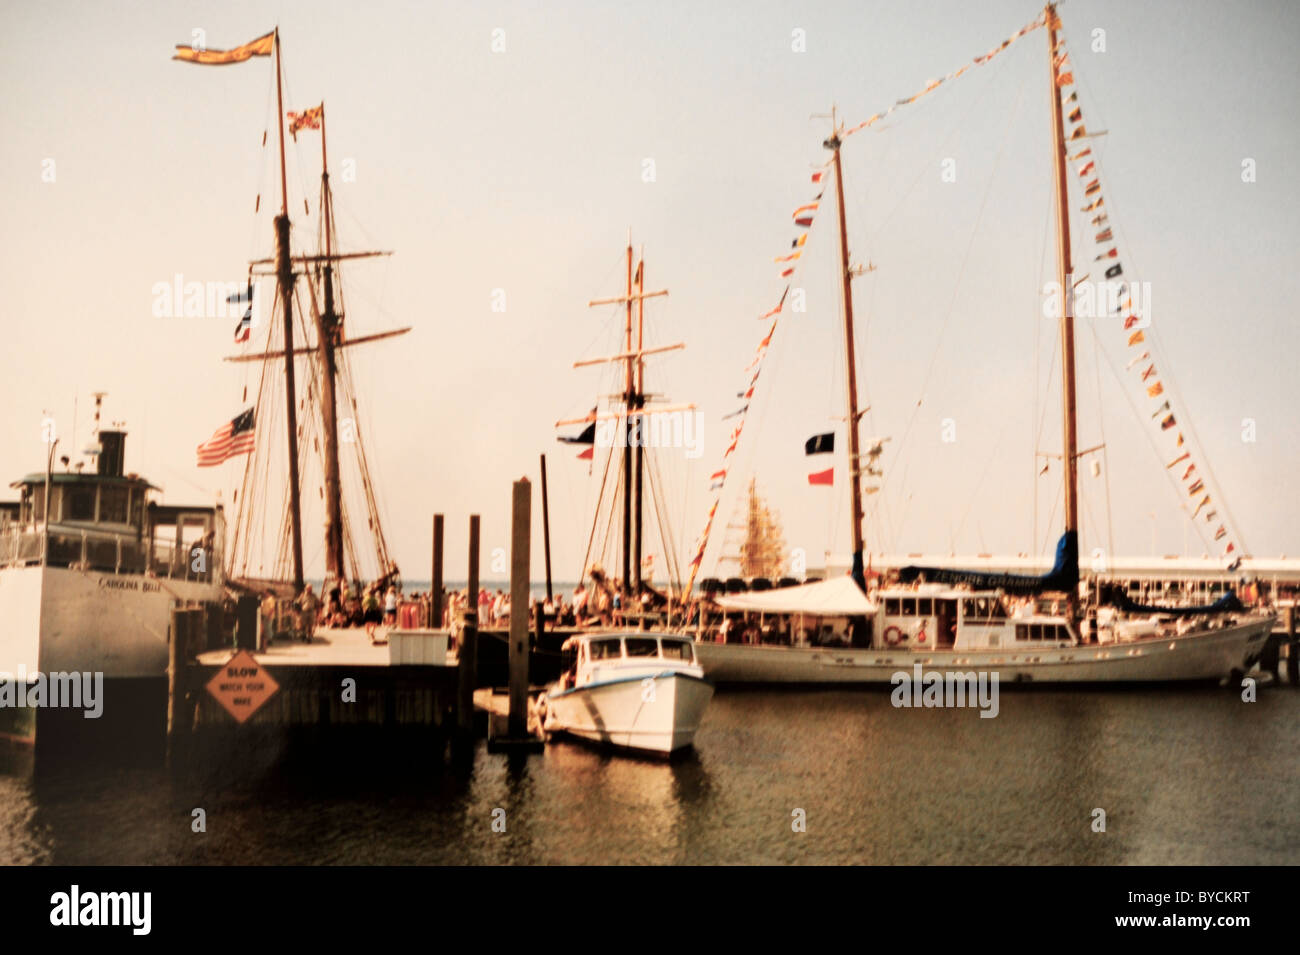 Sailing ships ready for visitors with signal flags displayed - Stock Image